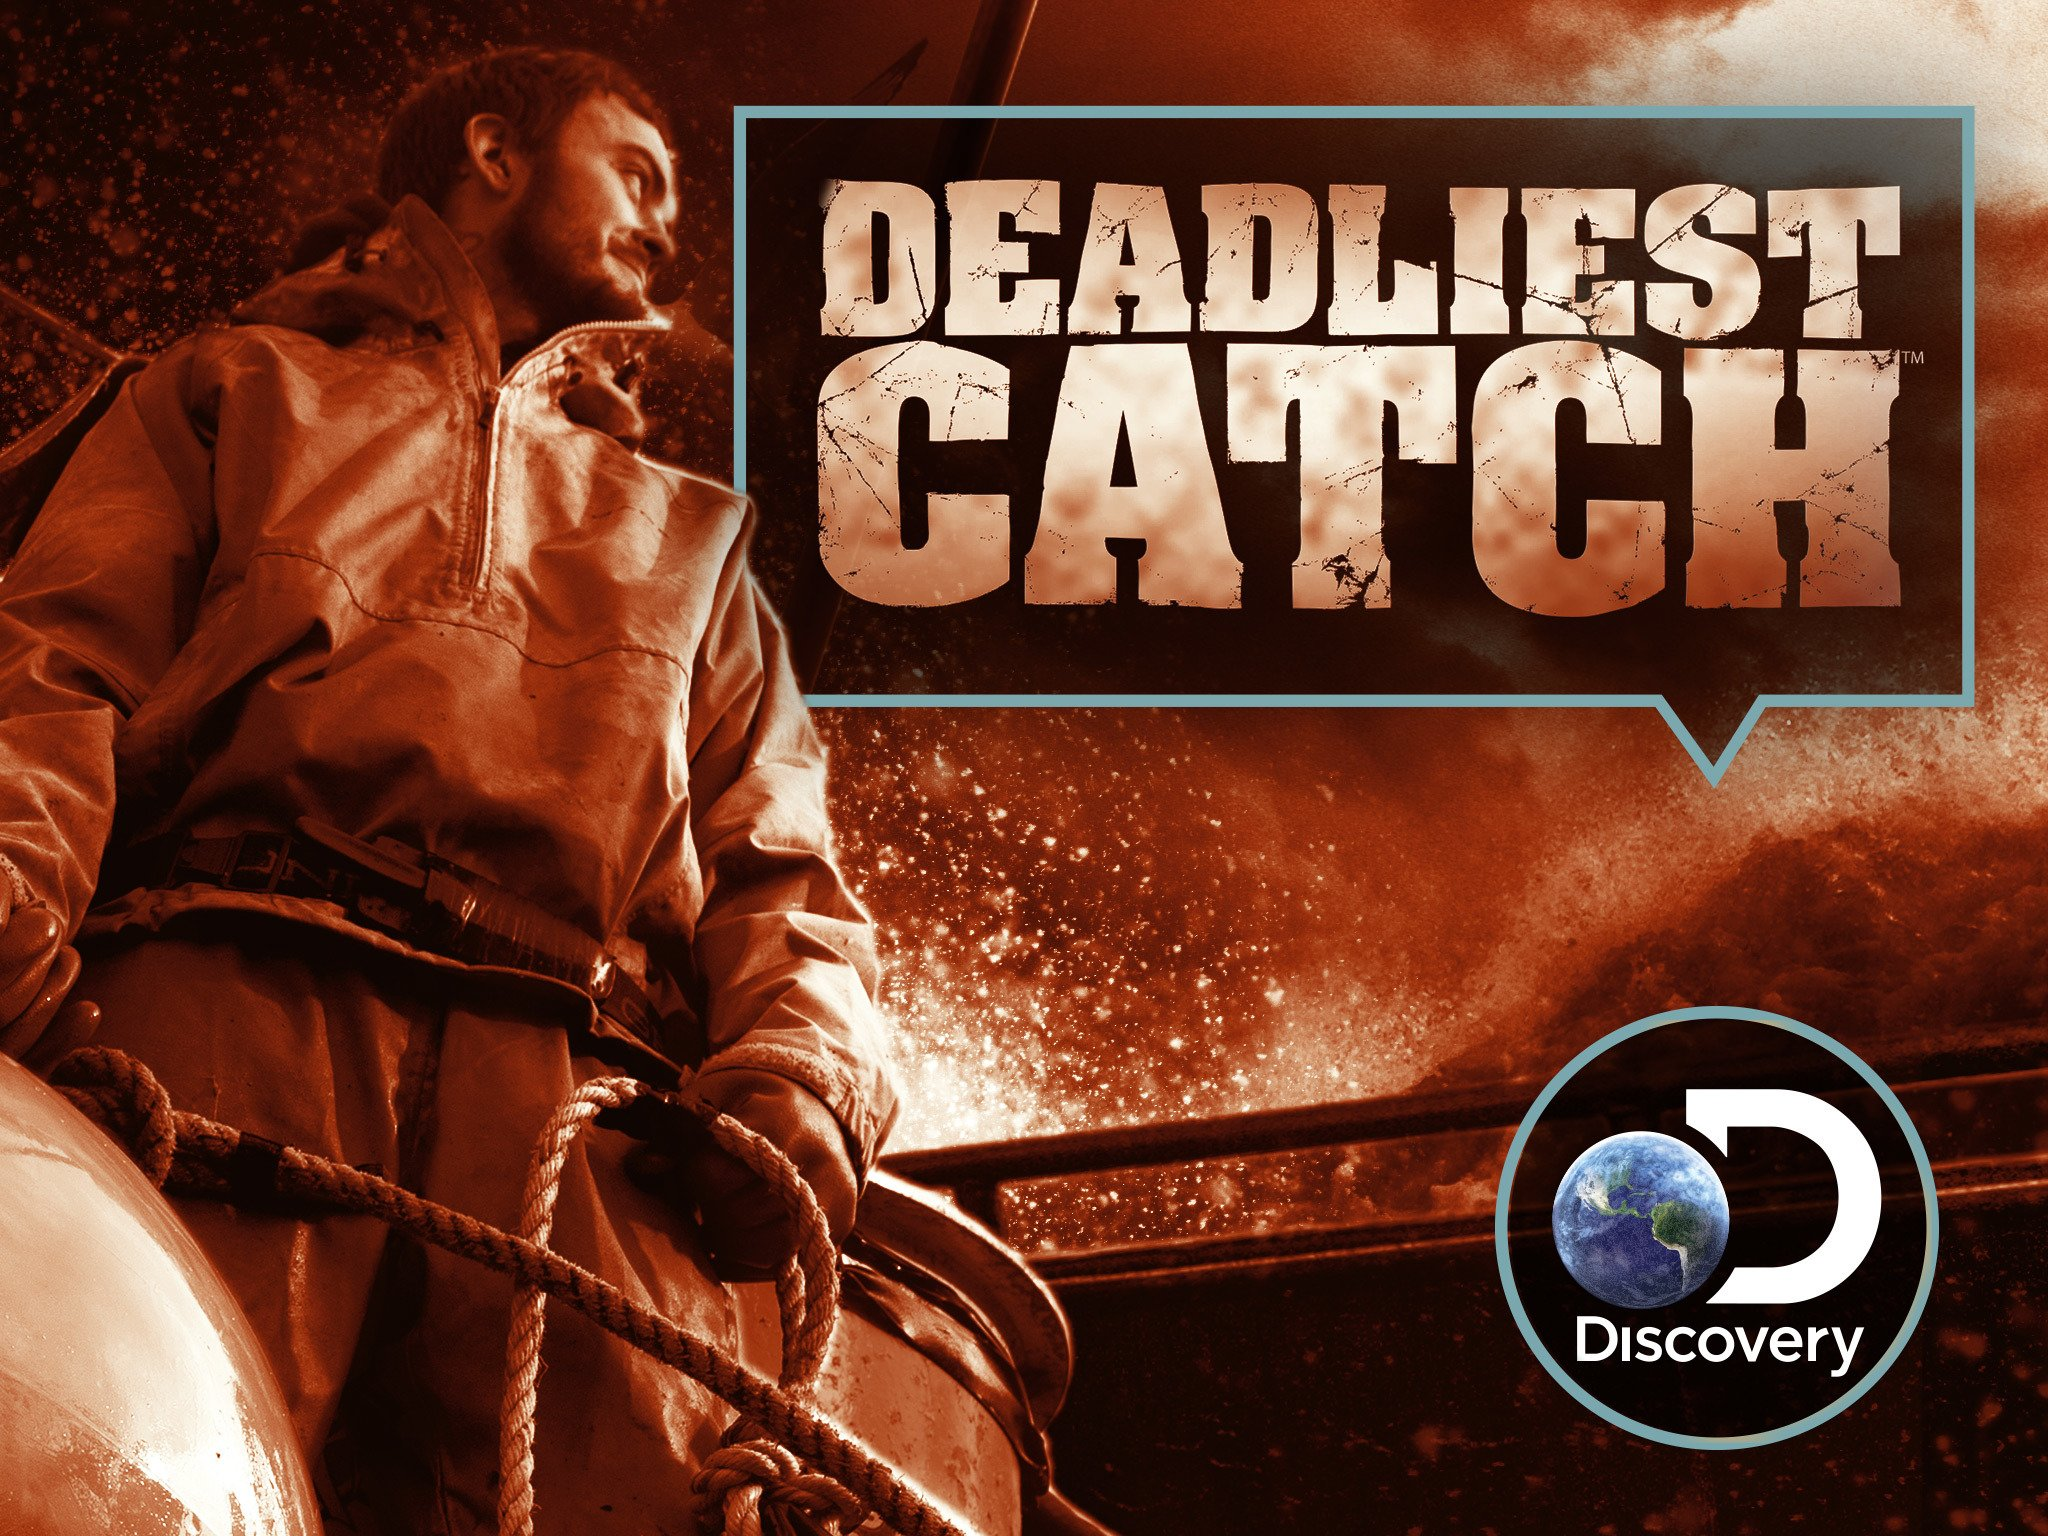 deadliest catch season 12 dvd release